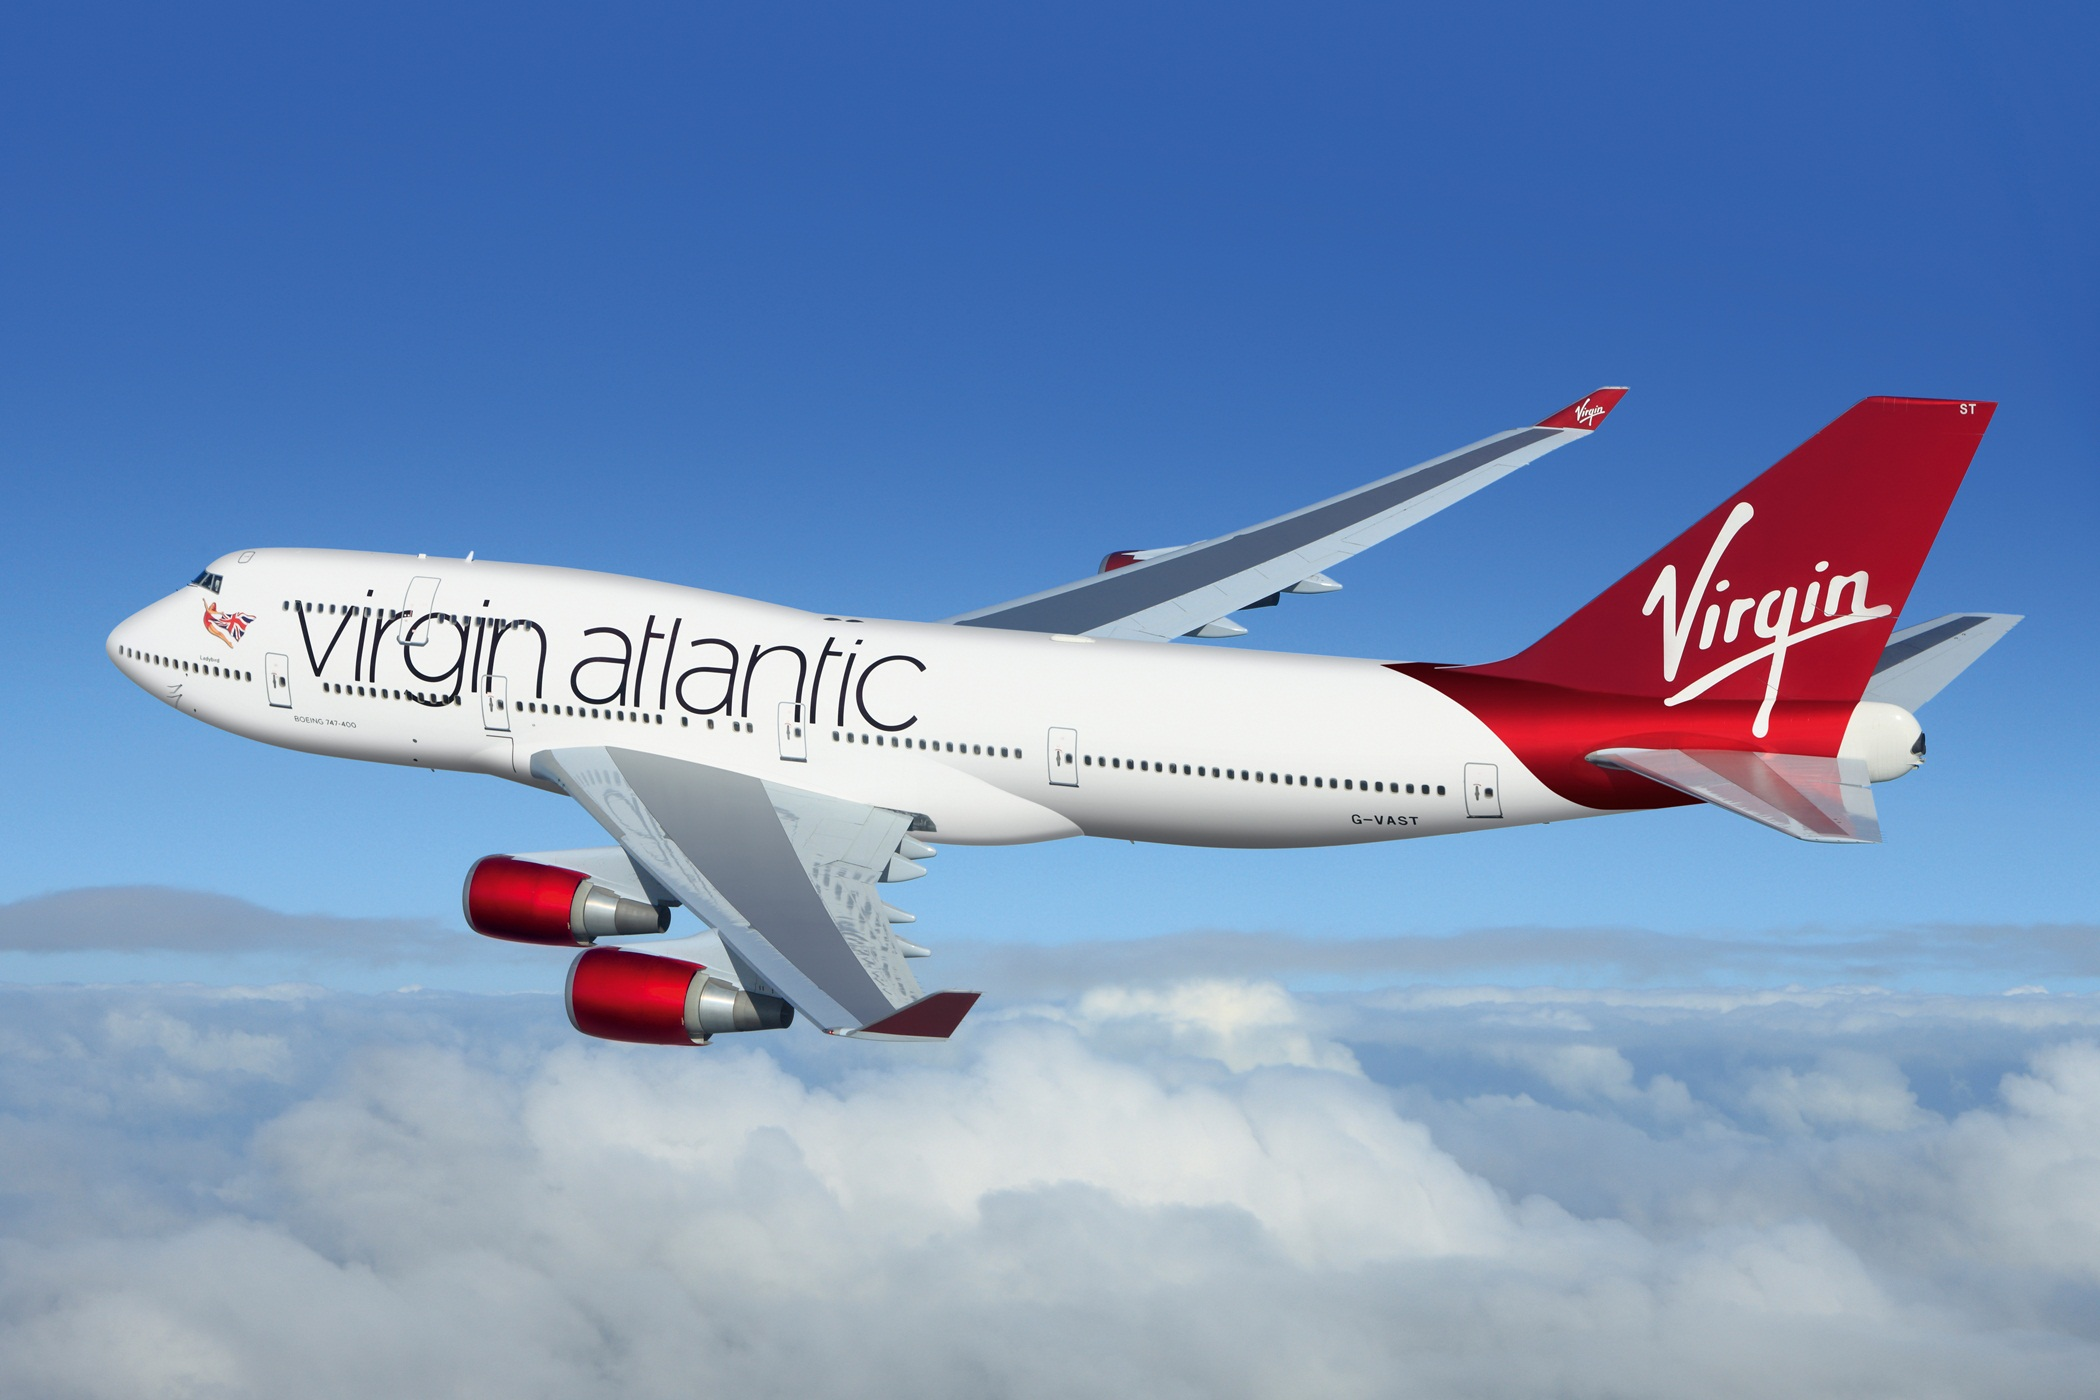 flying toy airplanes with Virgin Atlantic on Balsa Airplane Plans Free in addition File Singapore flying boat  Dinky Toys 60h also Royalty Free Stock Photo Paper Airplane Brown Isolated White Background Image36043695 additionally Virgin Atlantic as well Aircraft.